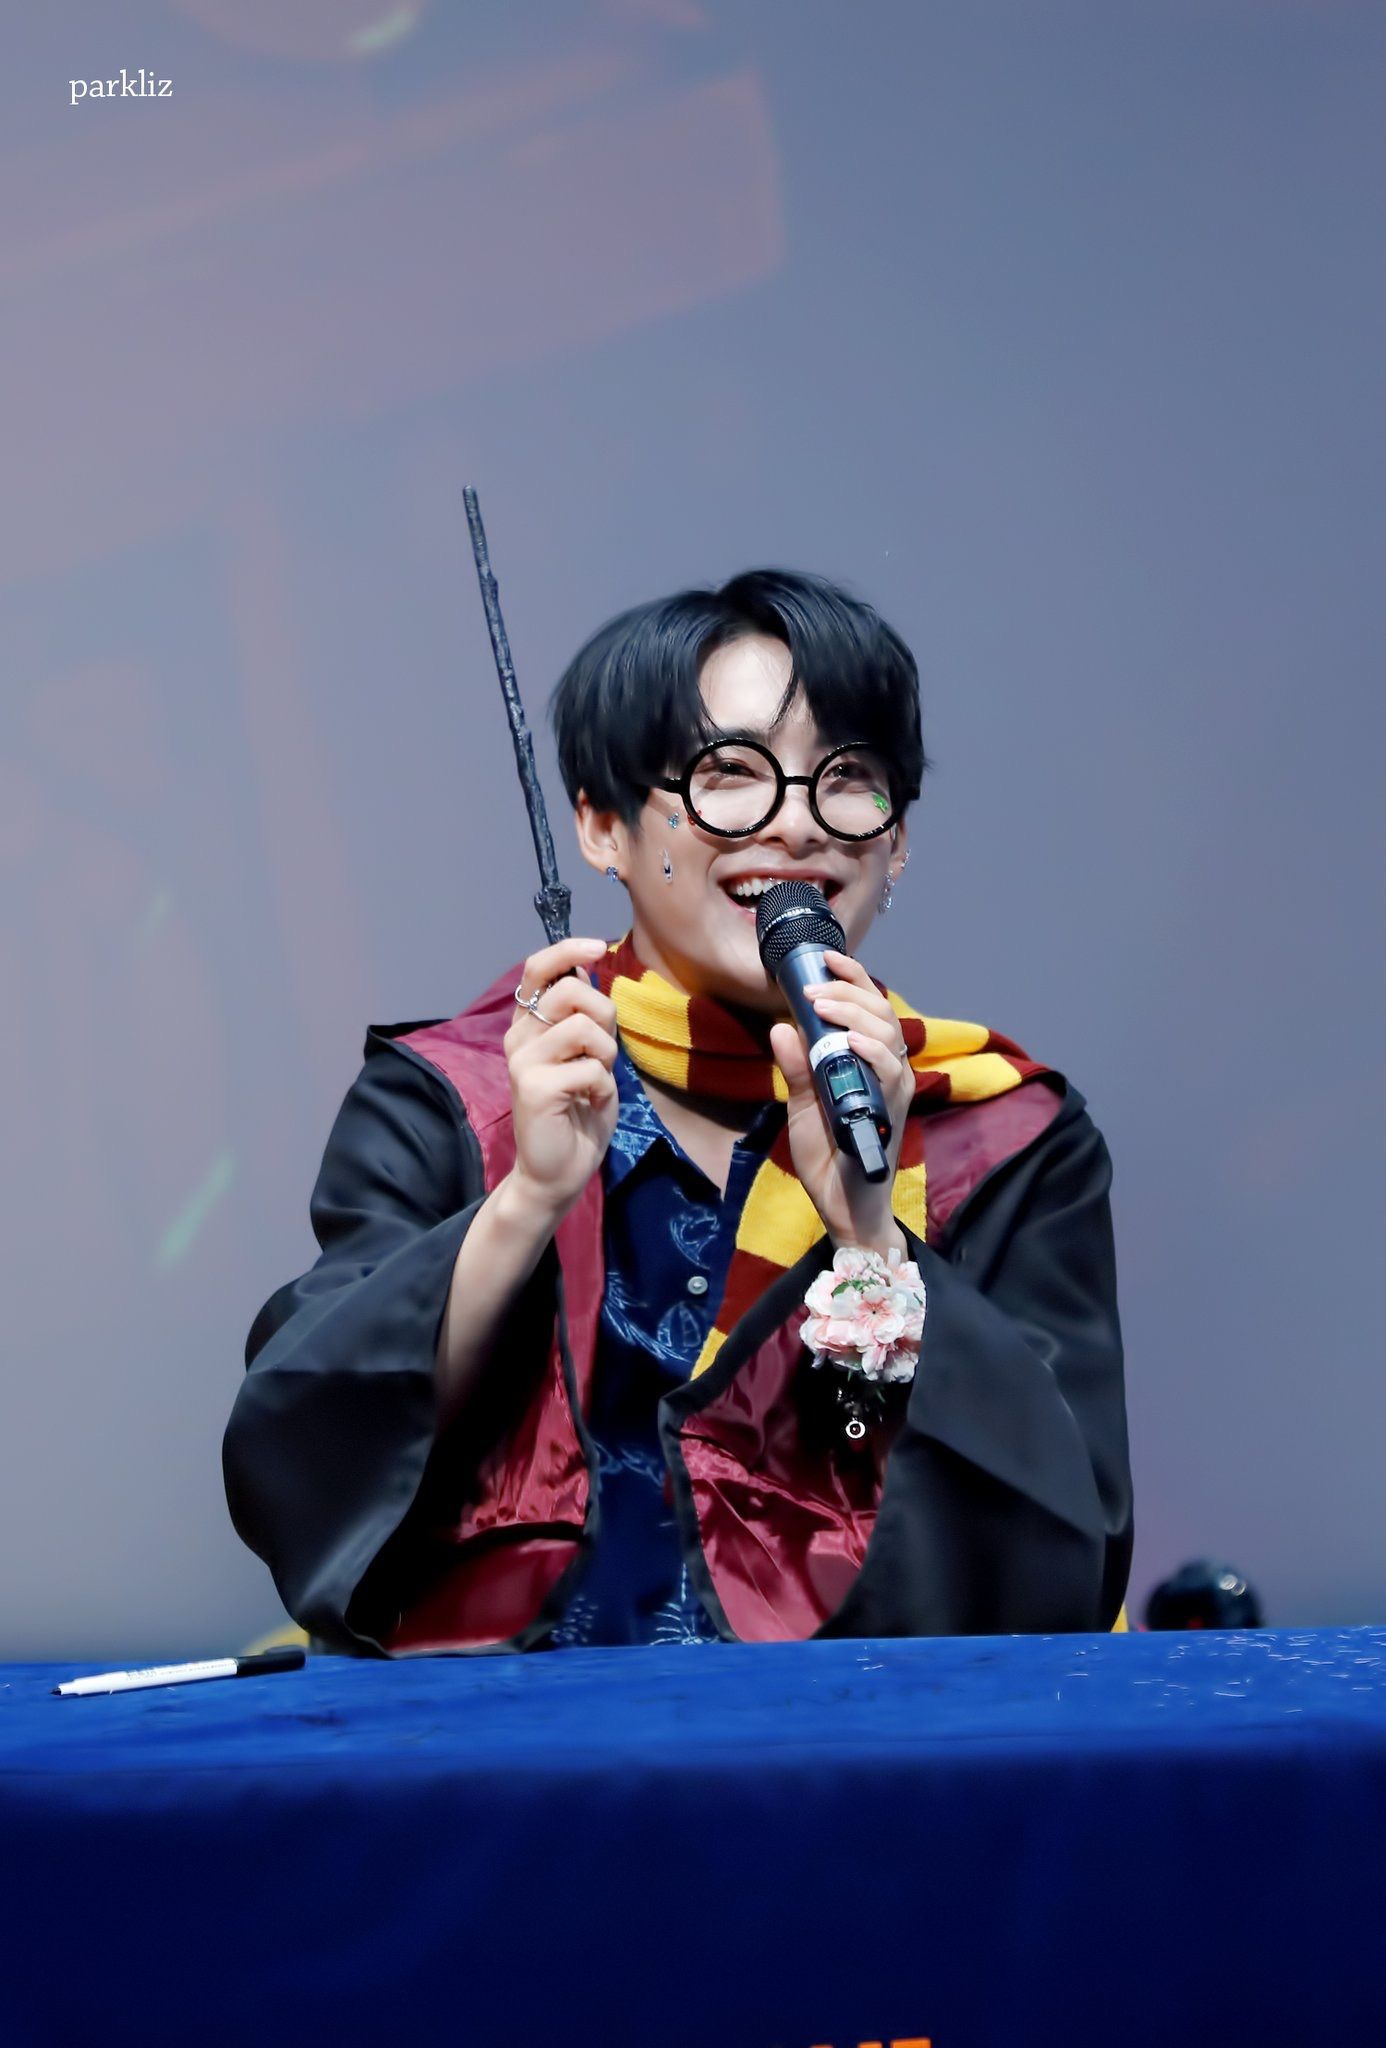 No Wonder He S My Bias Gryffindors Have Always Caught My Attention Even If I M A Slytherin Myself Cx Ace Handsome Faces Boy Bands